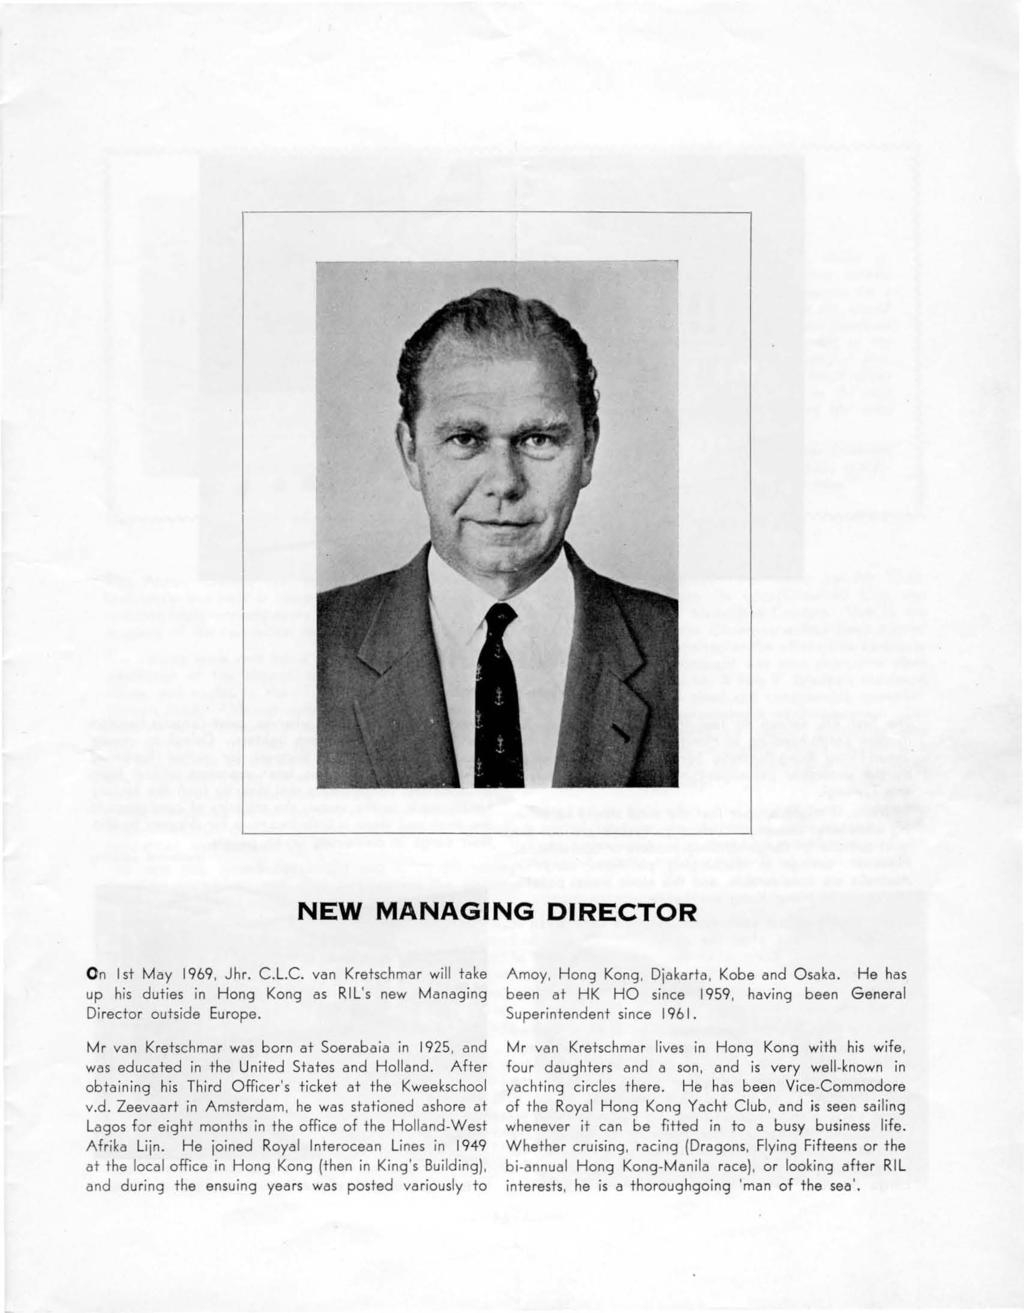 NEW MANAGING DIRECTOR On I si May 1969, Jhr. C.L.c. van Krelschmar will lake up his dutjes in Hang Kong as RIL's new Managing Director outside Europe.